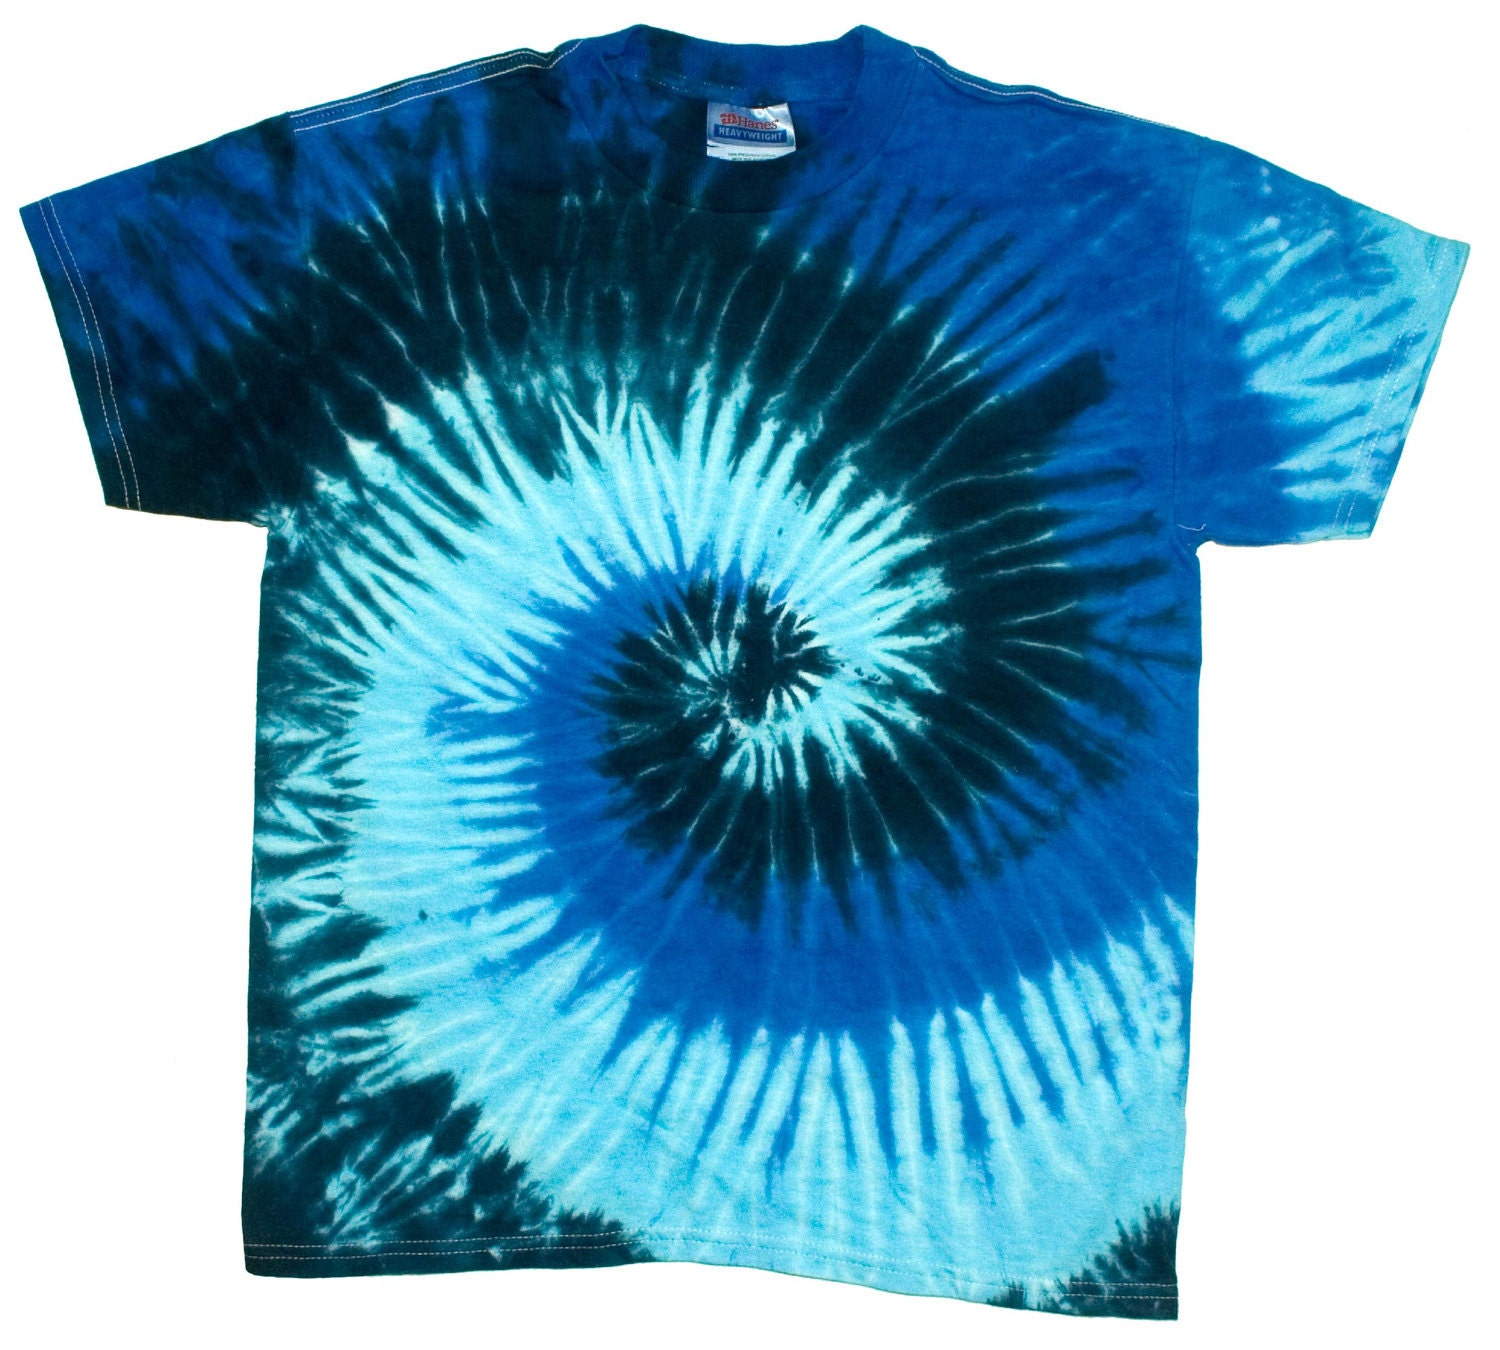 Blue ocean pinwheel spiral new tie dye t shirt adult xl use for Tie dye t shirt printing